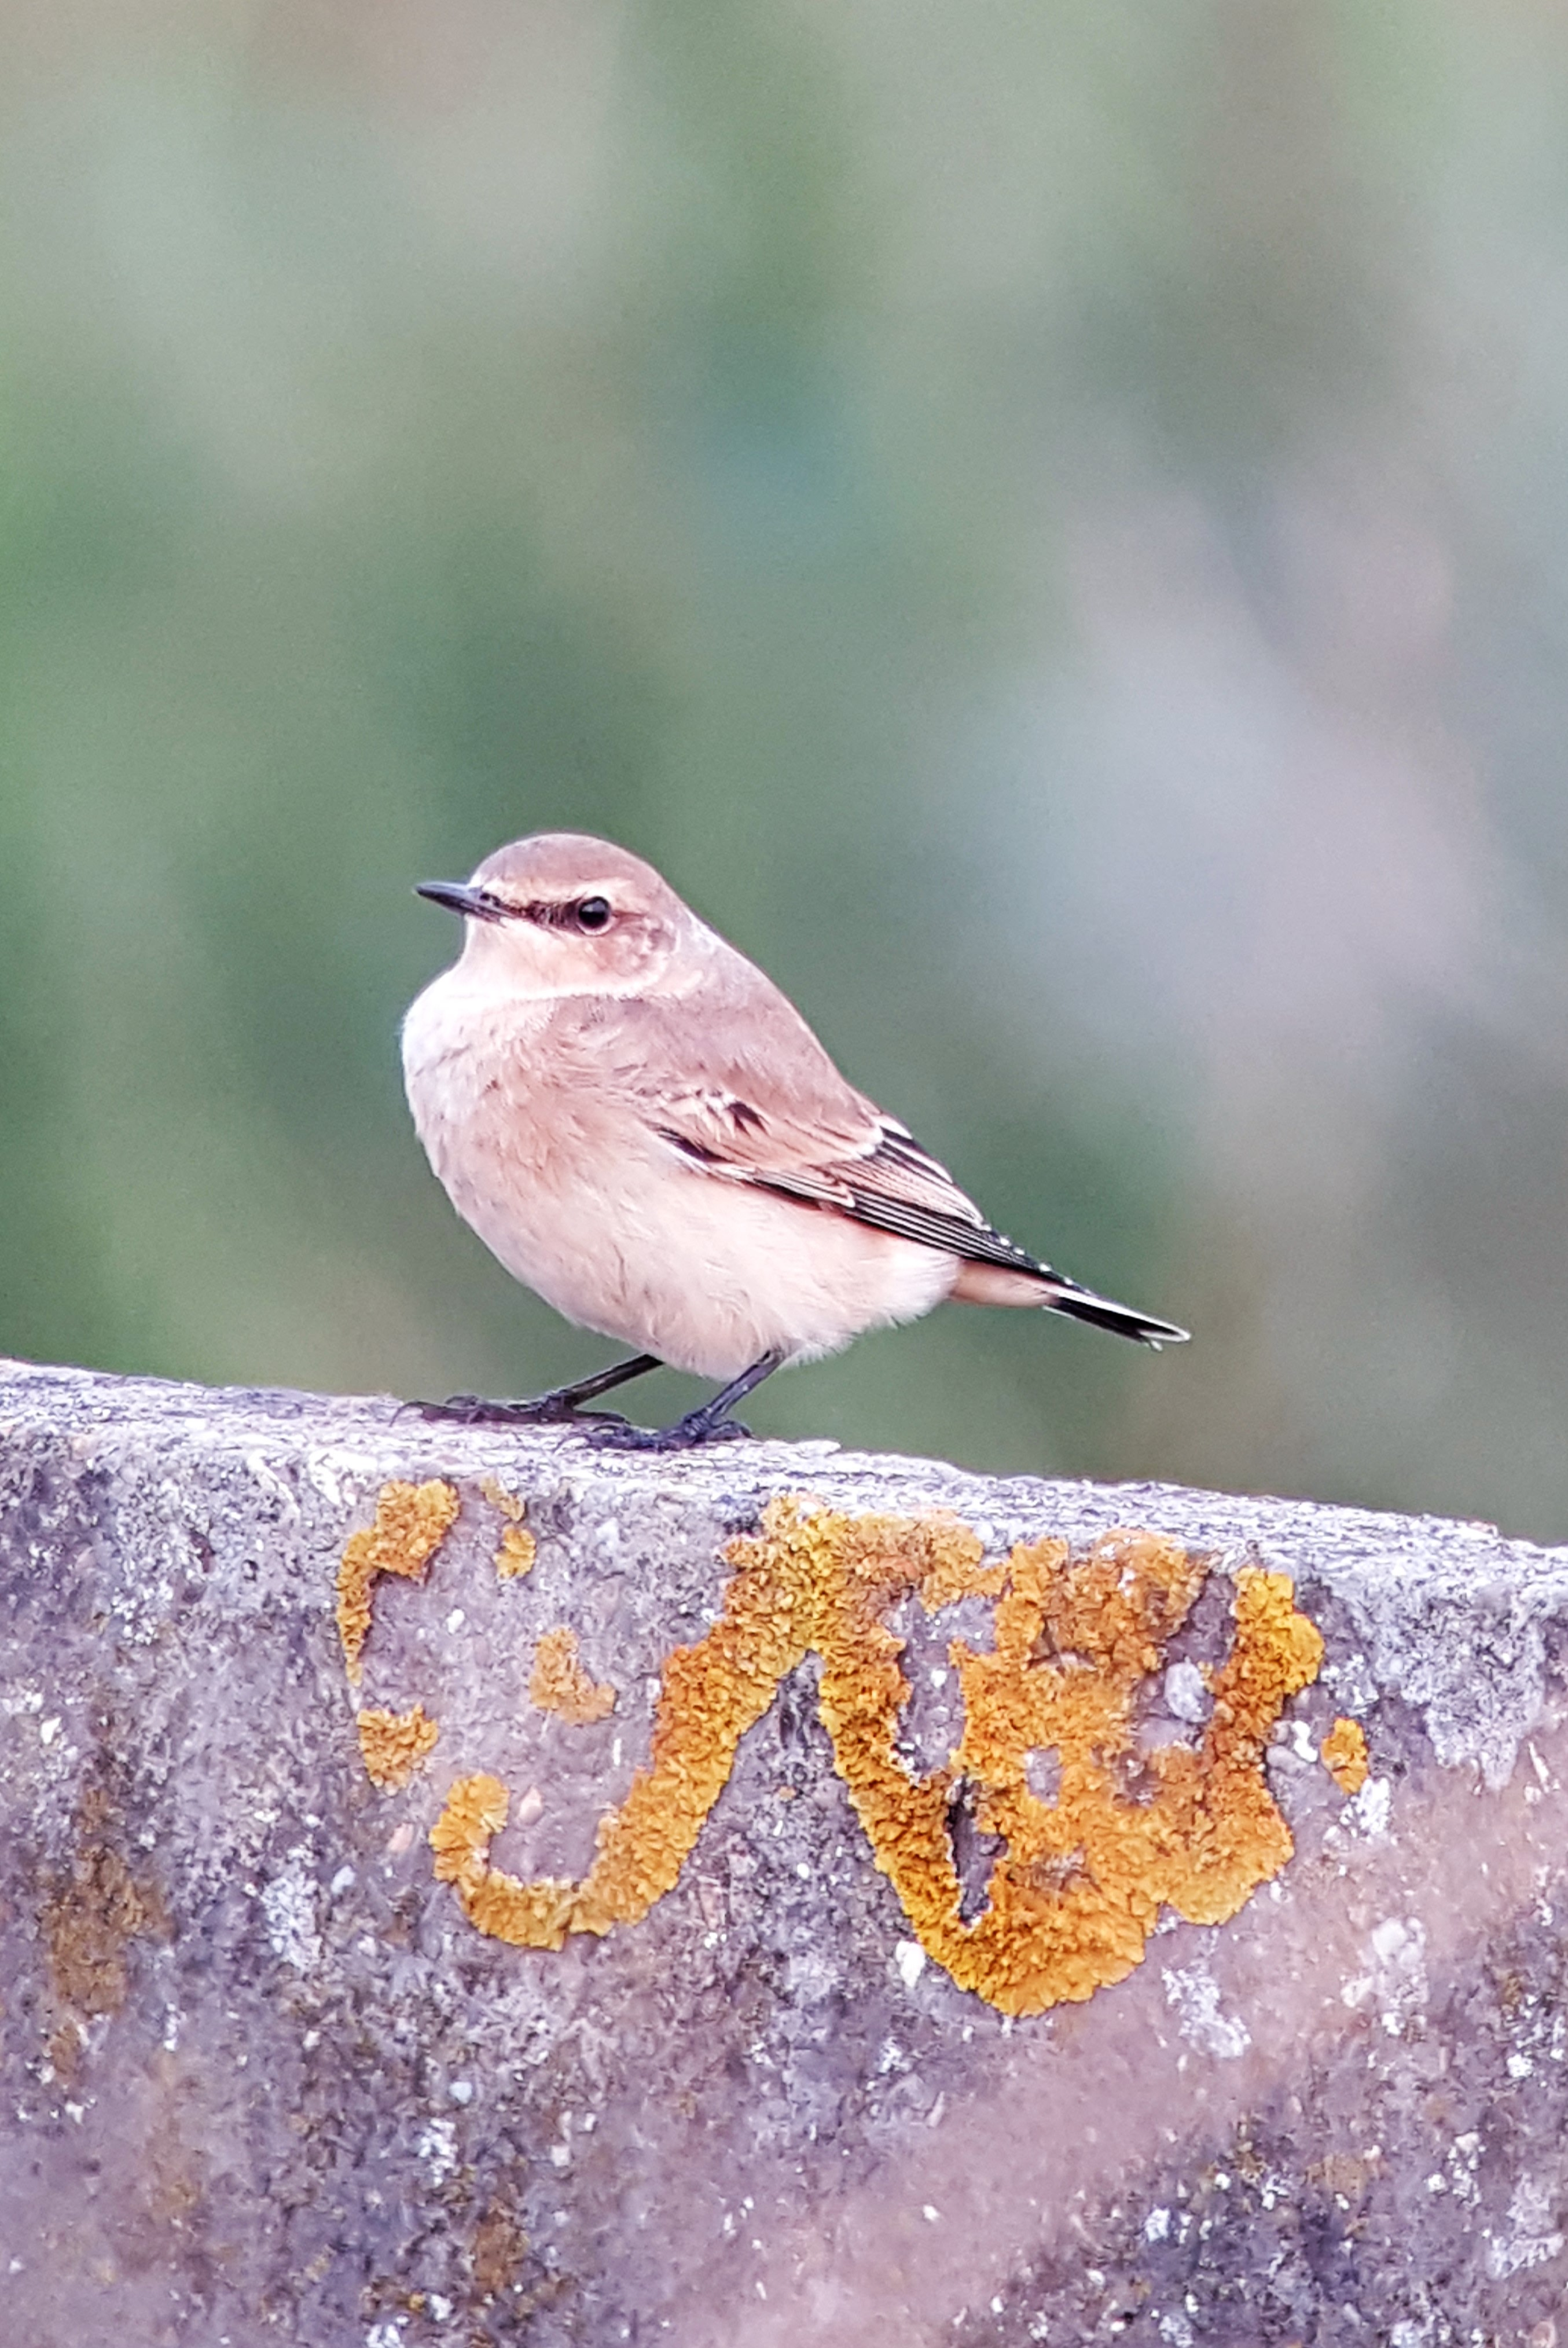 Wheatear at Hamford Water on 01 Aug 2019, (Matt Turner, ATS80/S6 -Canon SX50HS)